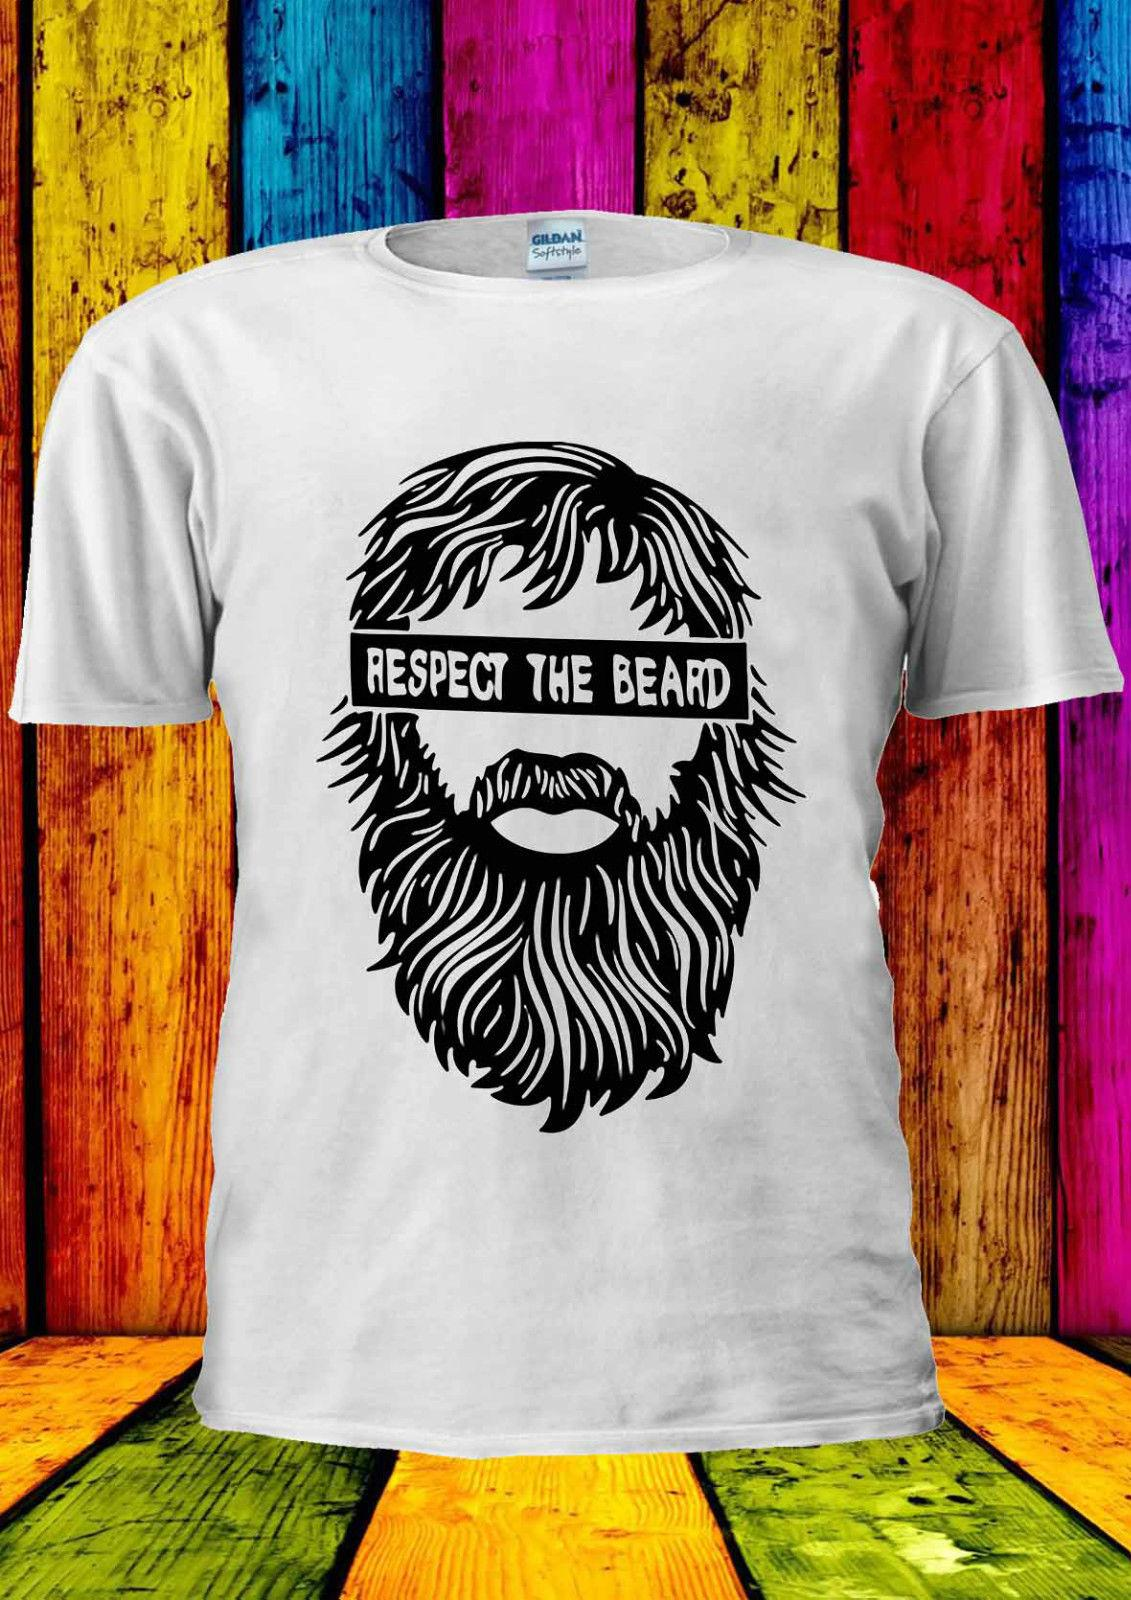 Respect The Beard Moustache Tumblr T-shirt Vest Tank Top Men Women Unisex 1754 Summer Men'S fashion Tee,Comfortable t shirt,